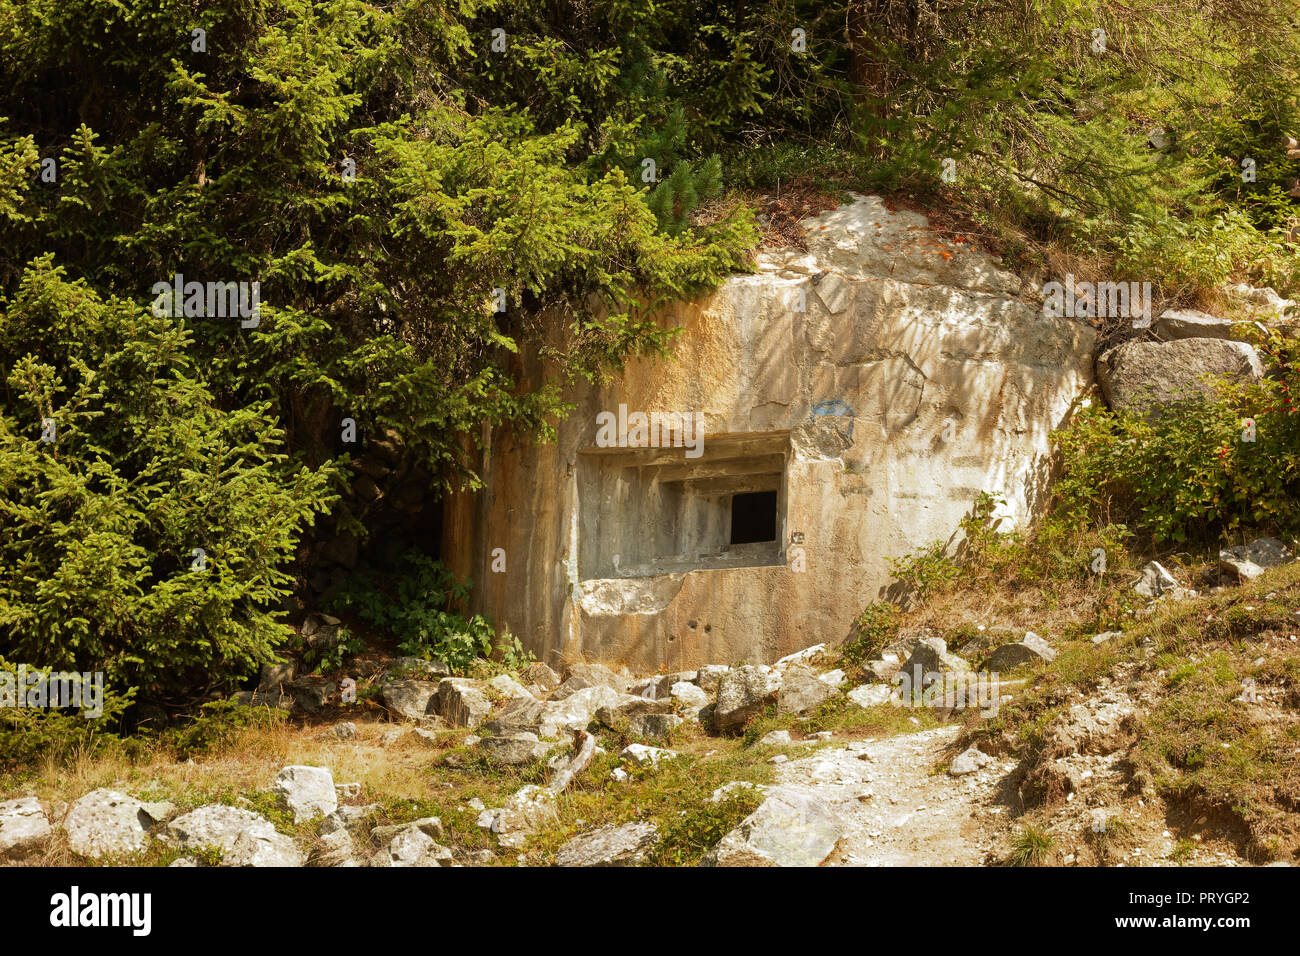 Bunker, defence system Plamort, Second World War, to protect Italy from Nazi Germany, near the Plamorter moss biotope - Stock Image